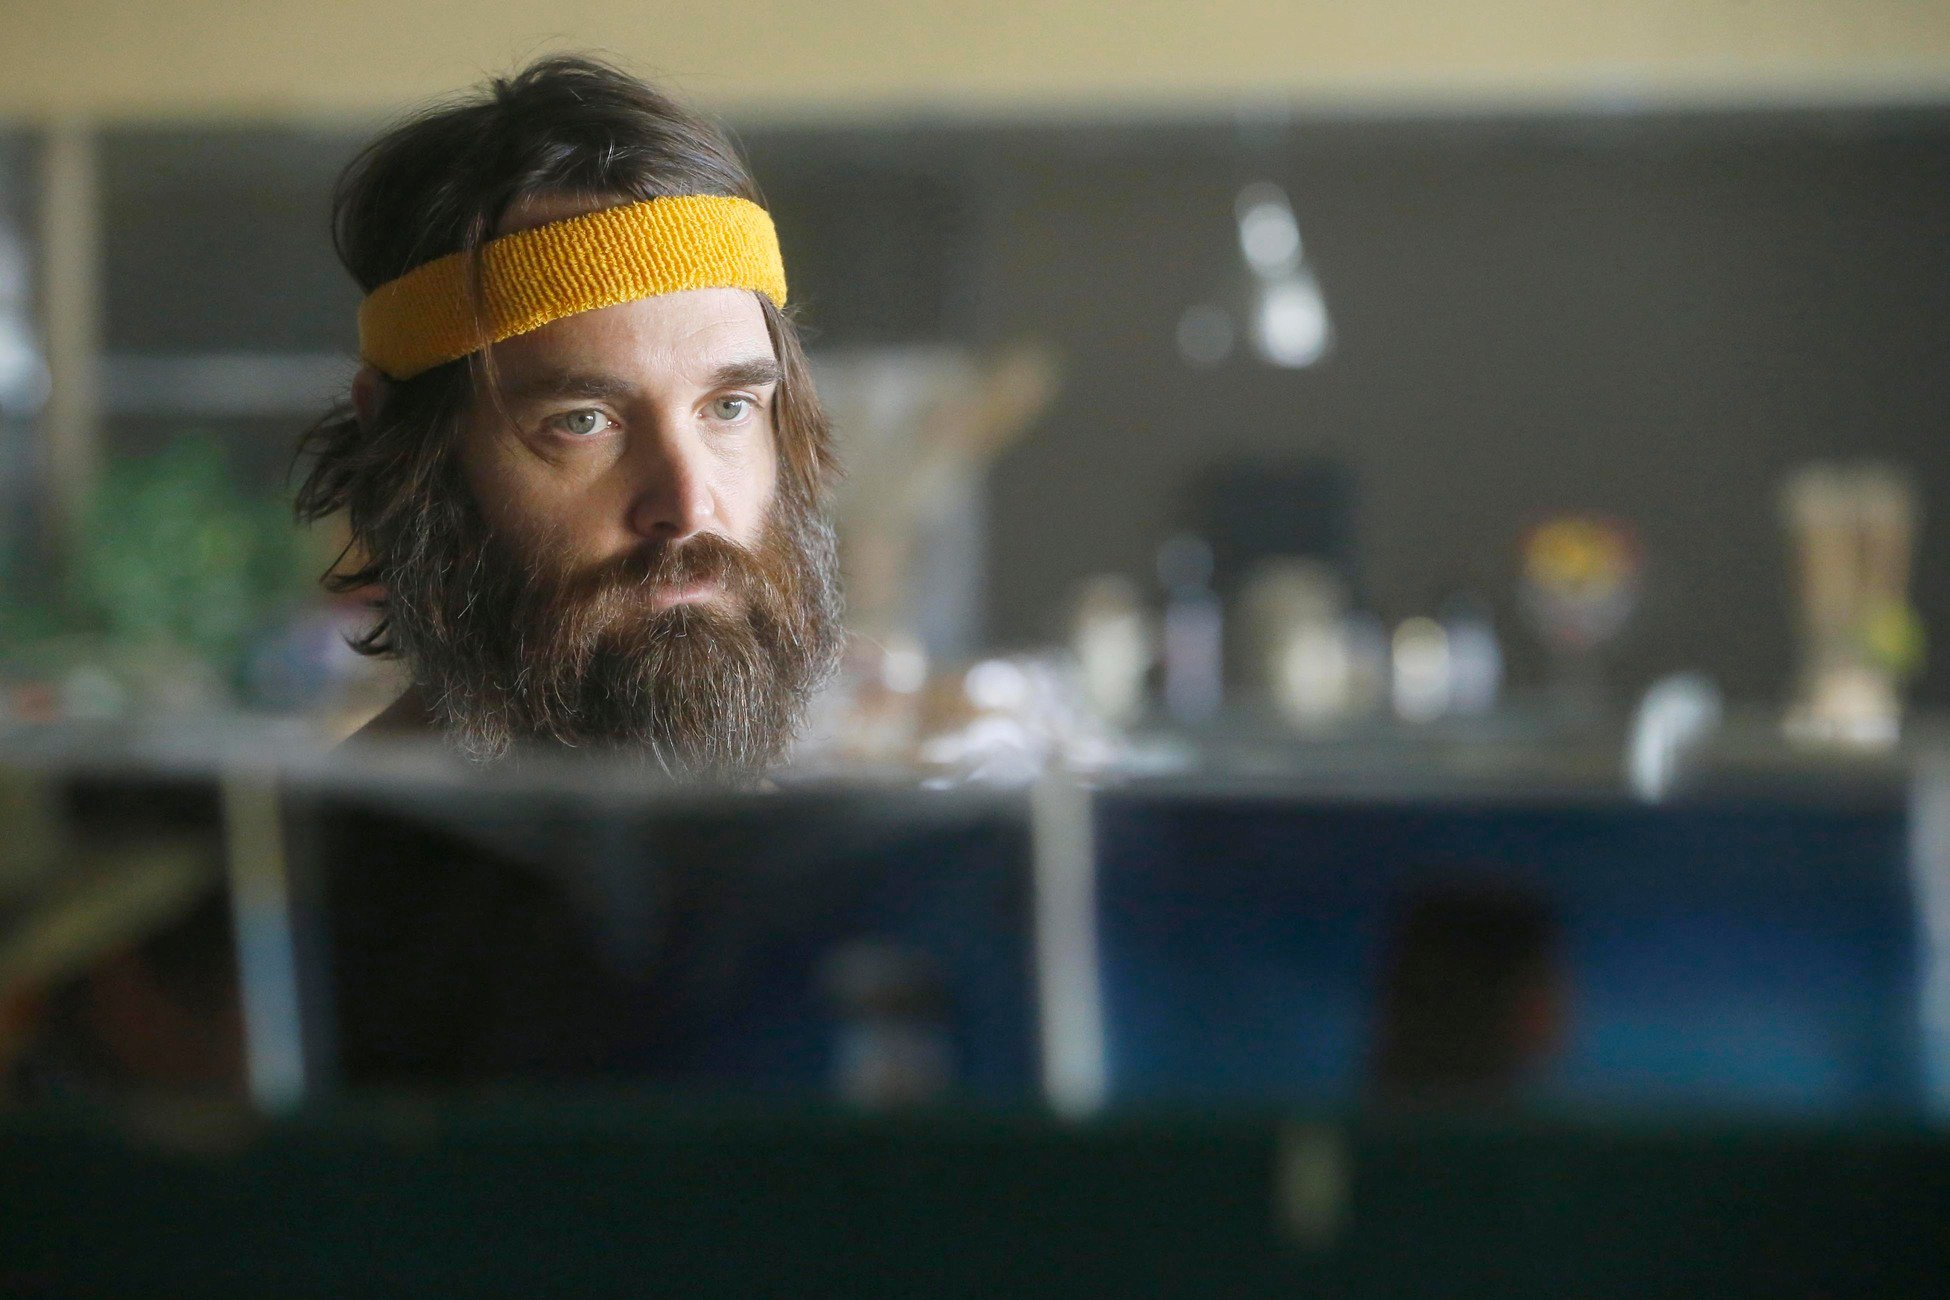 The Last Man On Earth Season 1 Review